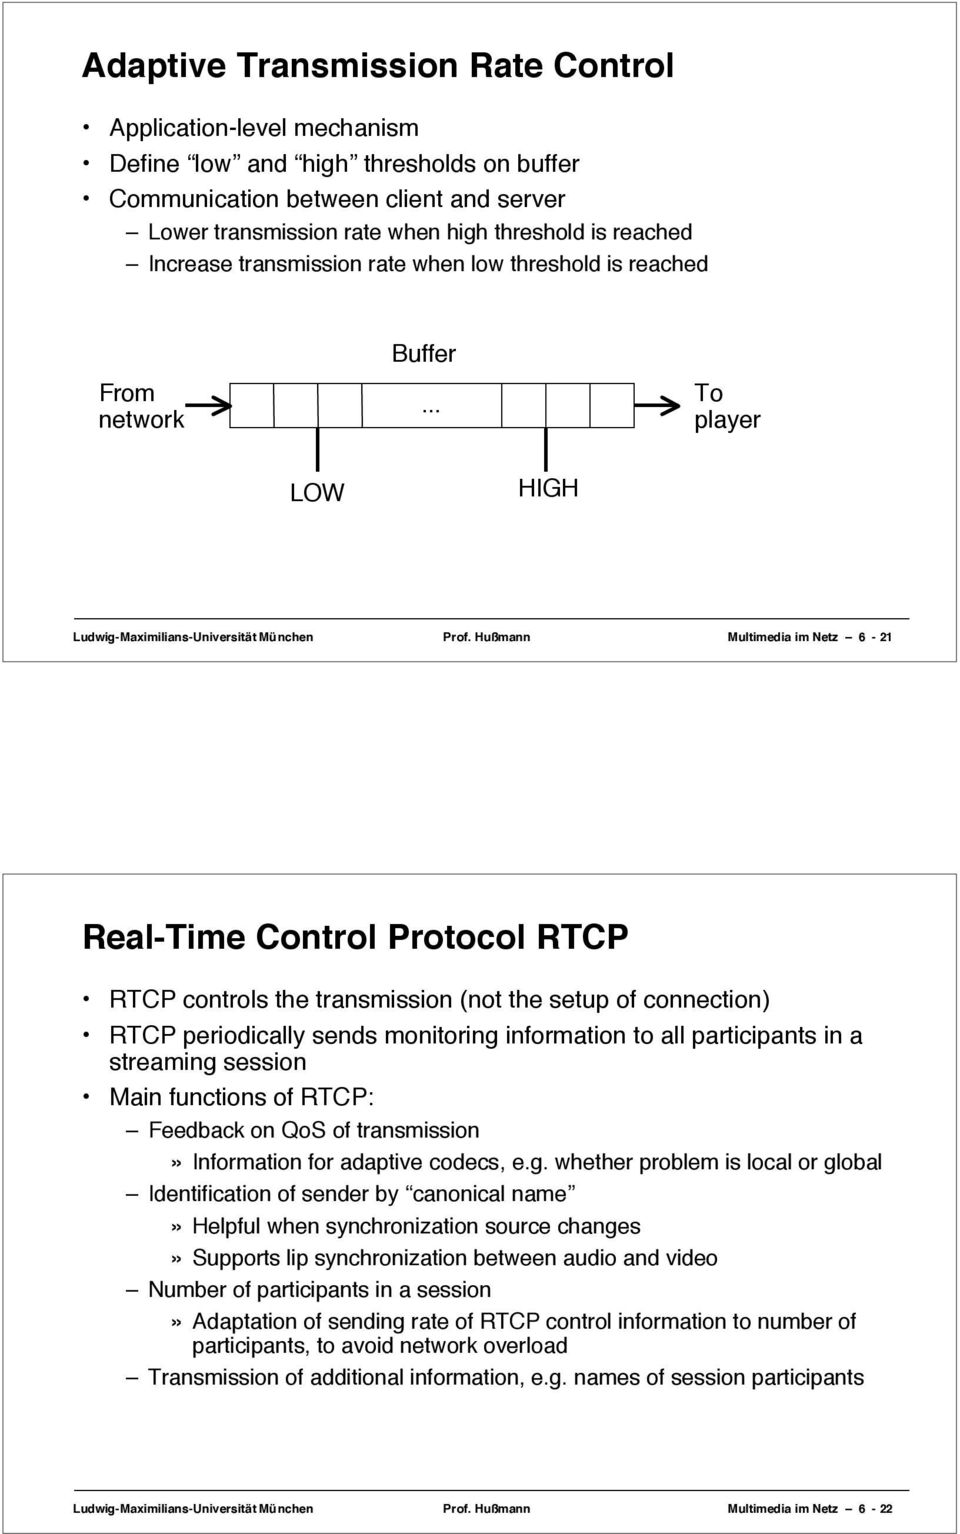 Hußmann Multimedia im Netz 6-21 Real-Time Control Protocol RTCP RTCP controls the transmission (not the setup of connection) RTCP periodically sends monitoring information to all participants in a